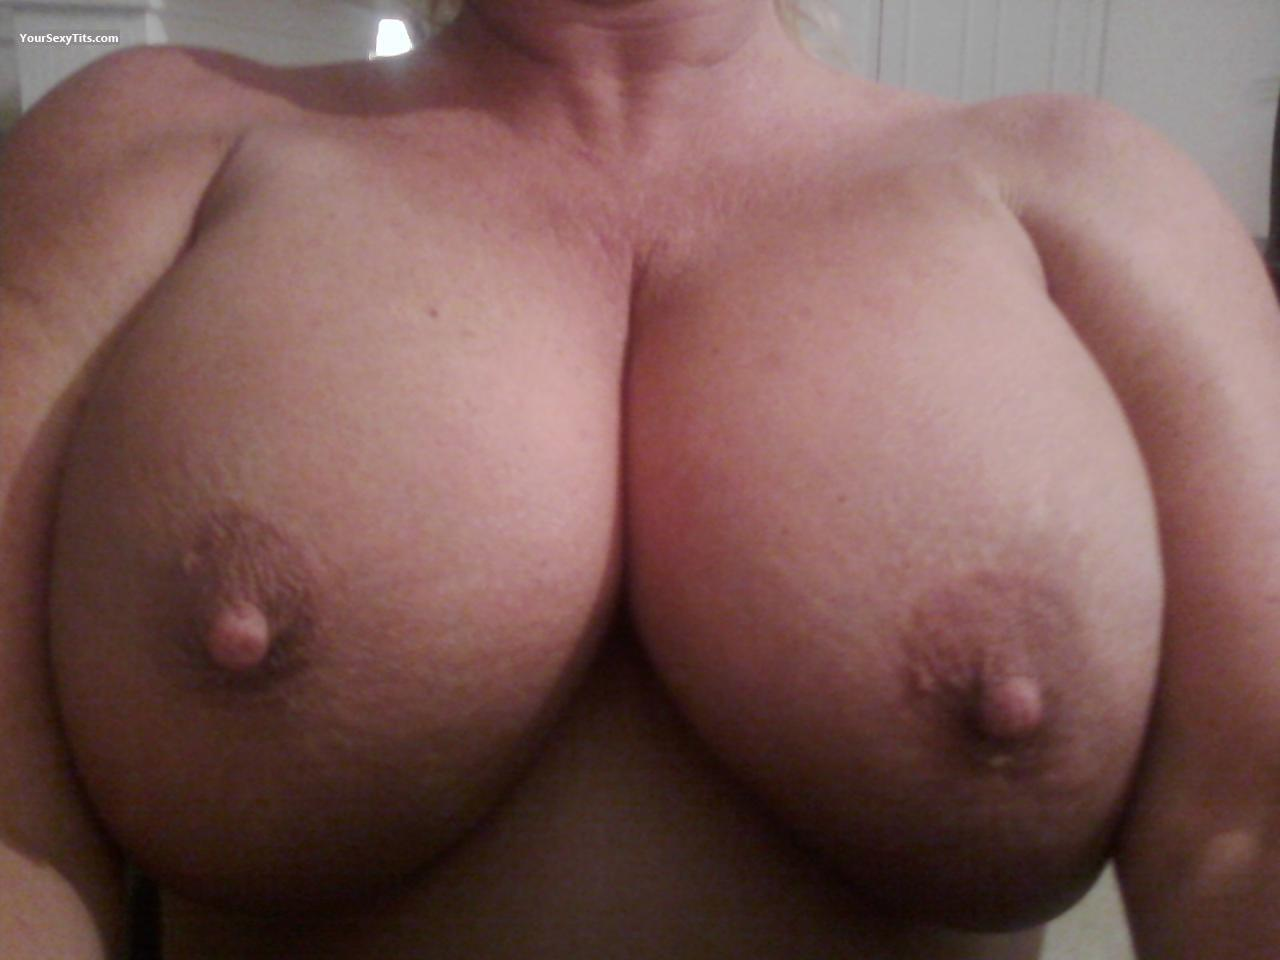 Tit Flash: Very Big Tits - Wy. Grown from United States